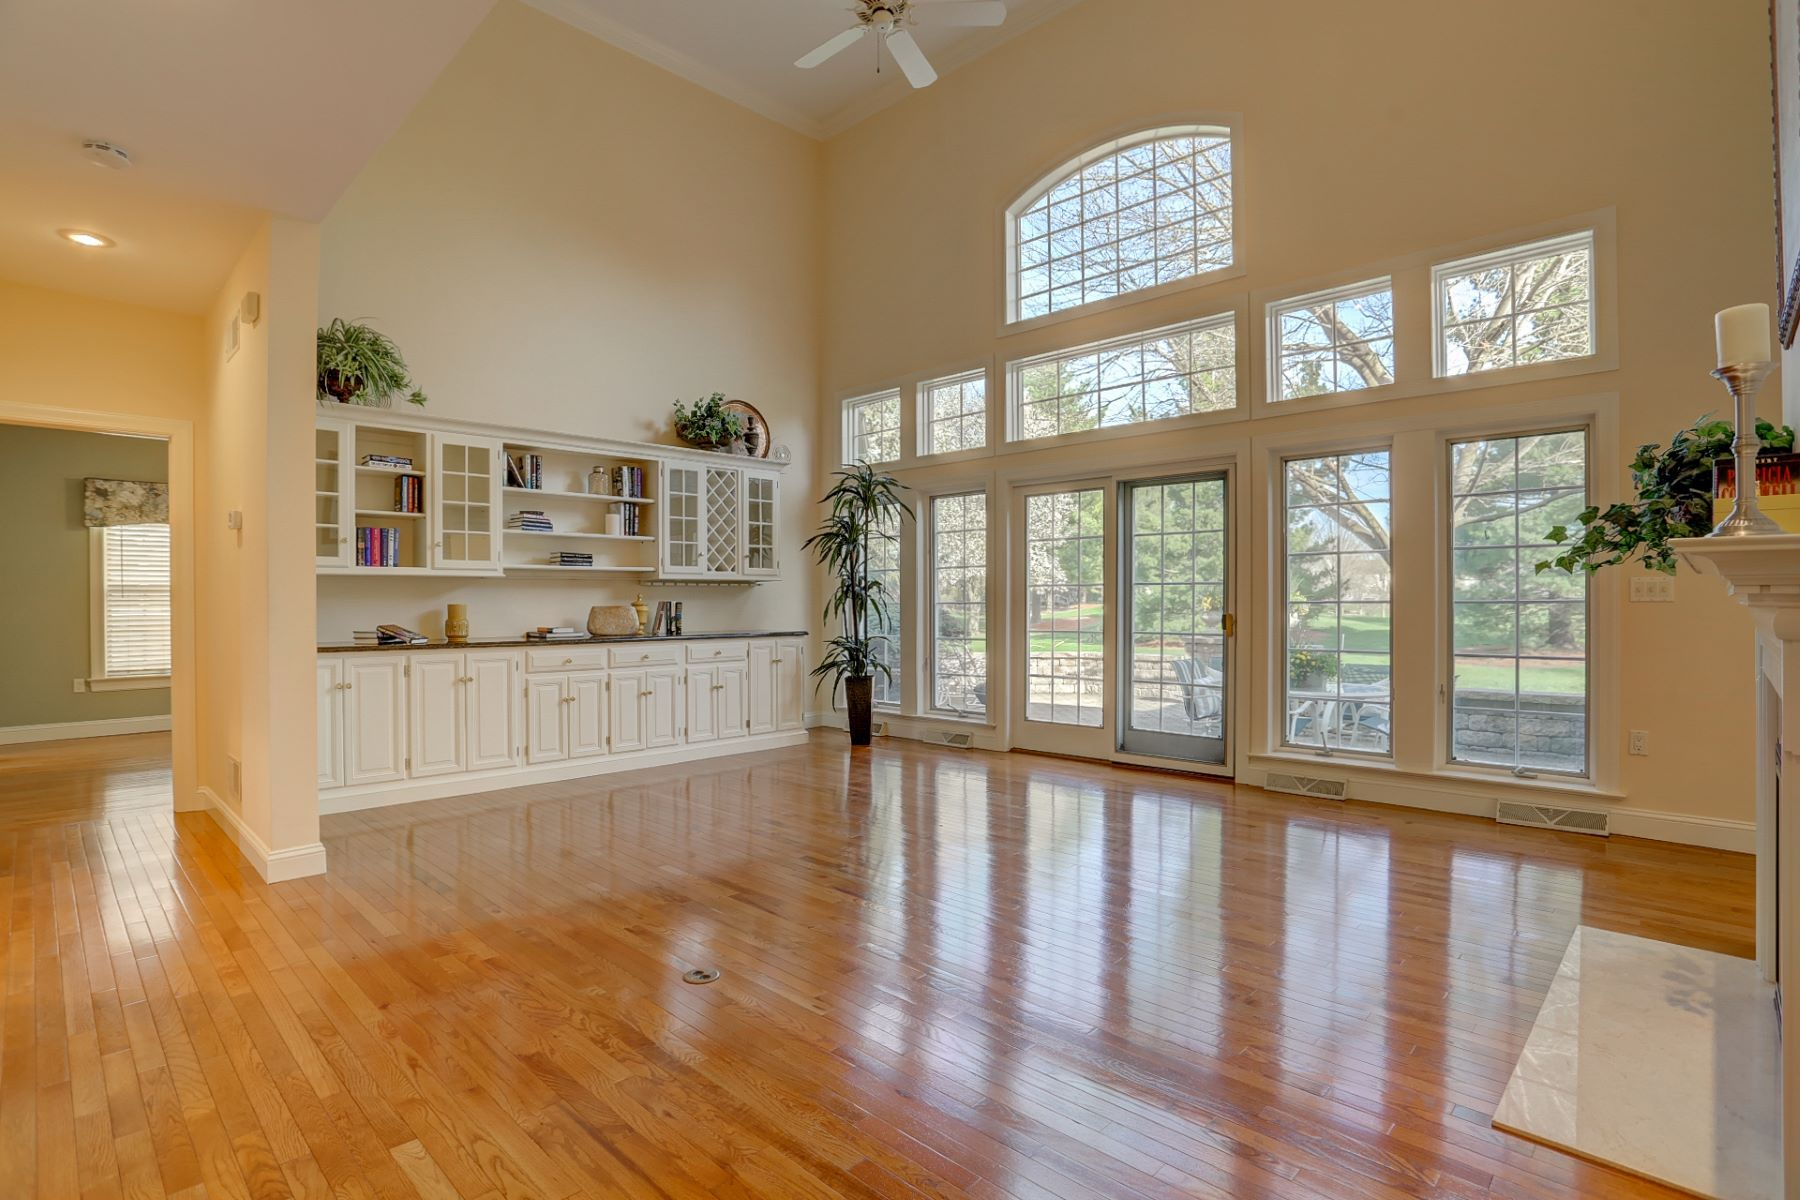 Additional photo for property listing at 805 Woodfield Drive  立提兹市, 宾夕法尼亚州 17543 美国